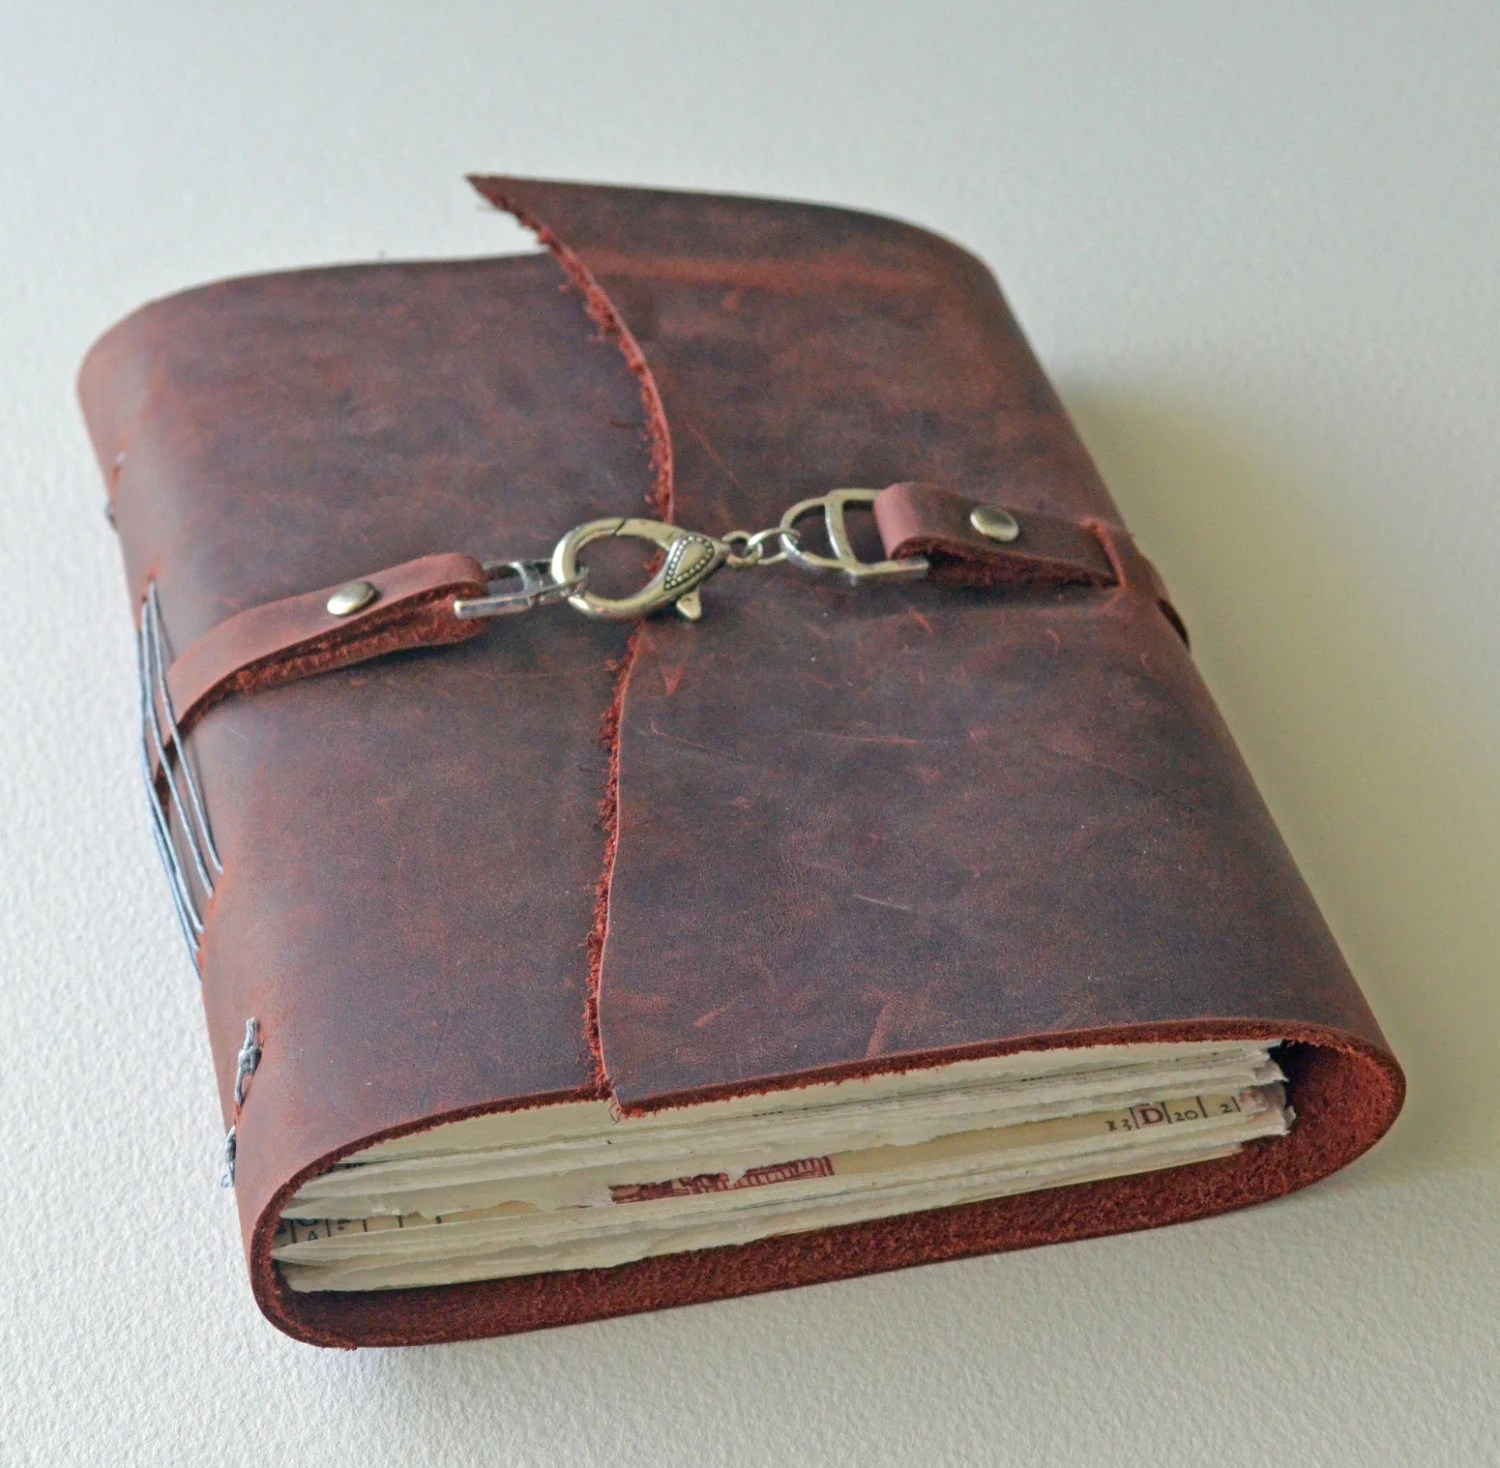 "Leather Journal Diary - Handbound - Rustic Deep Red - 5x7"" Pages"